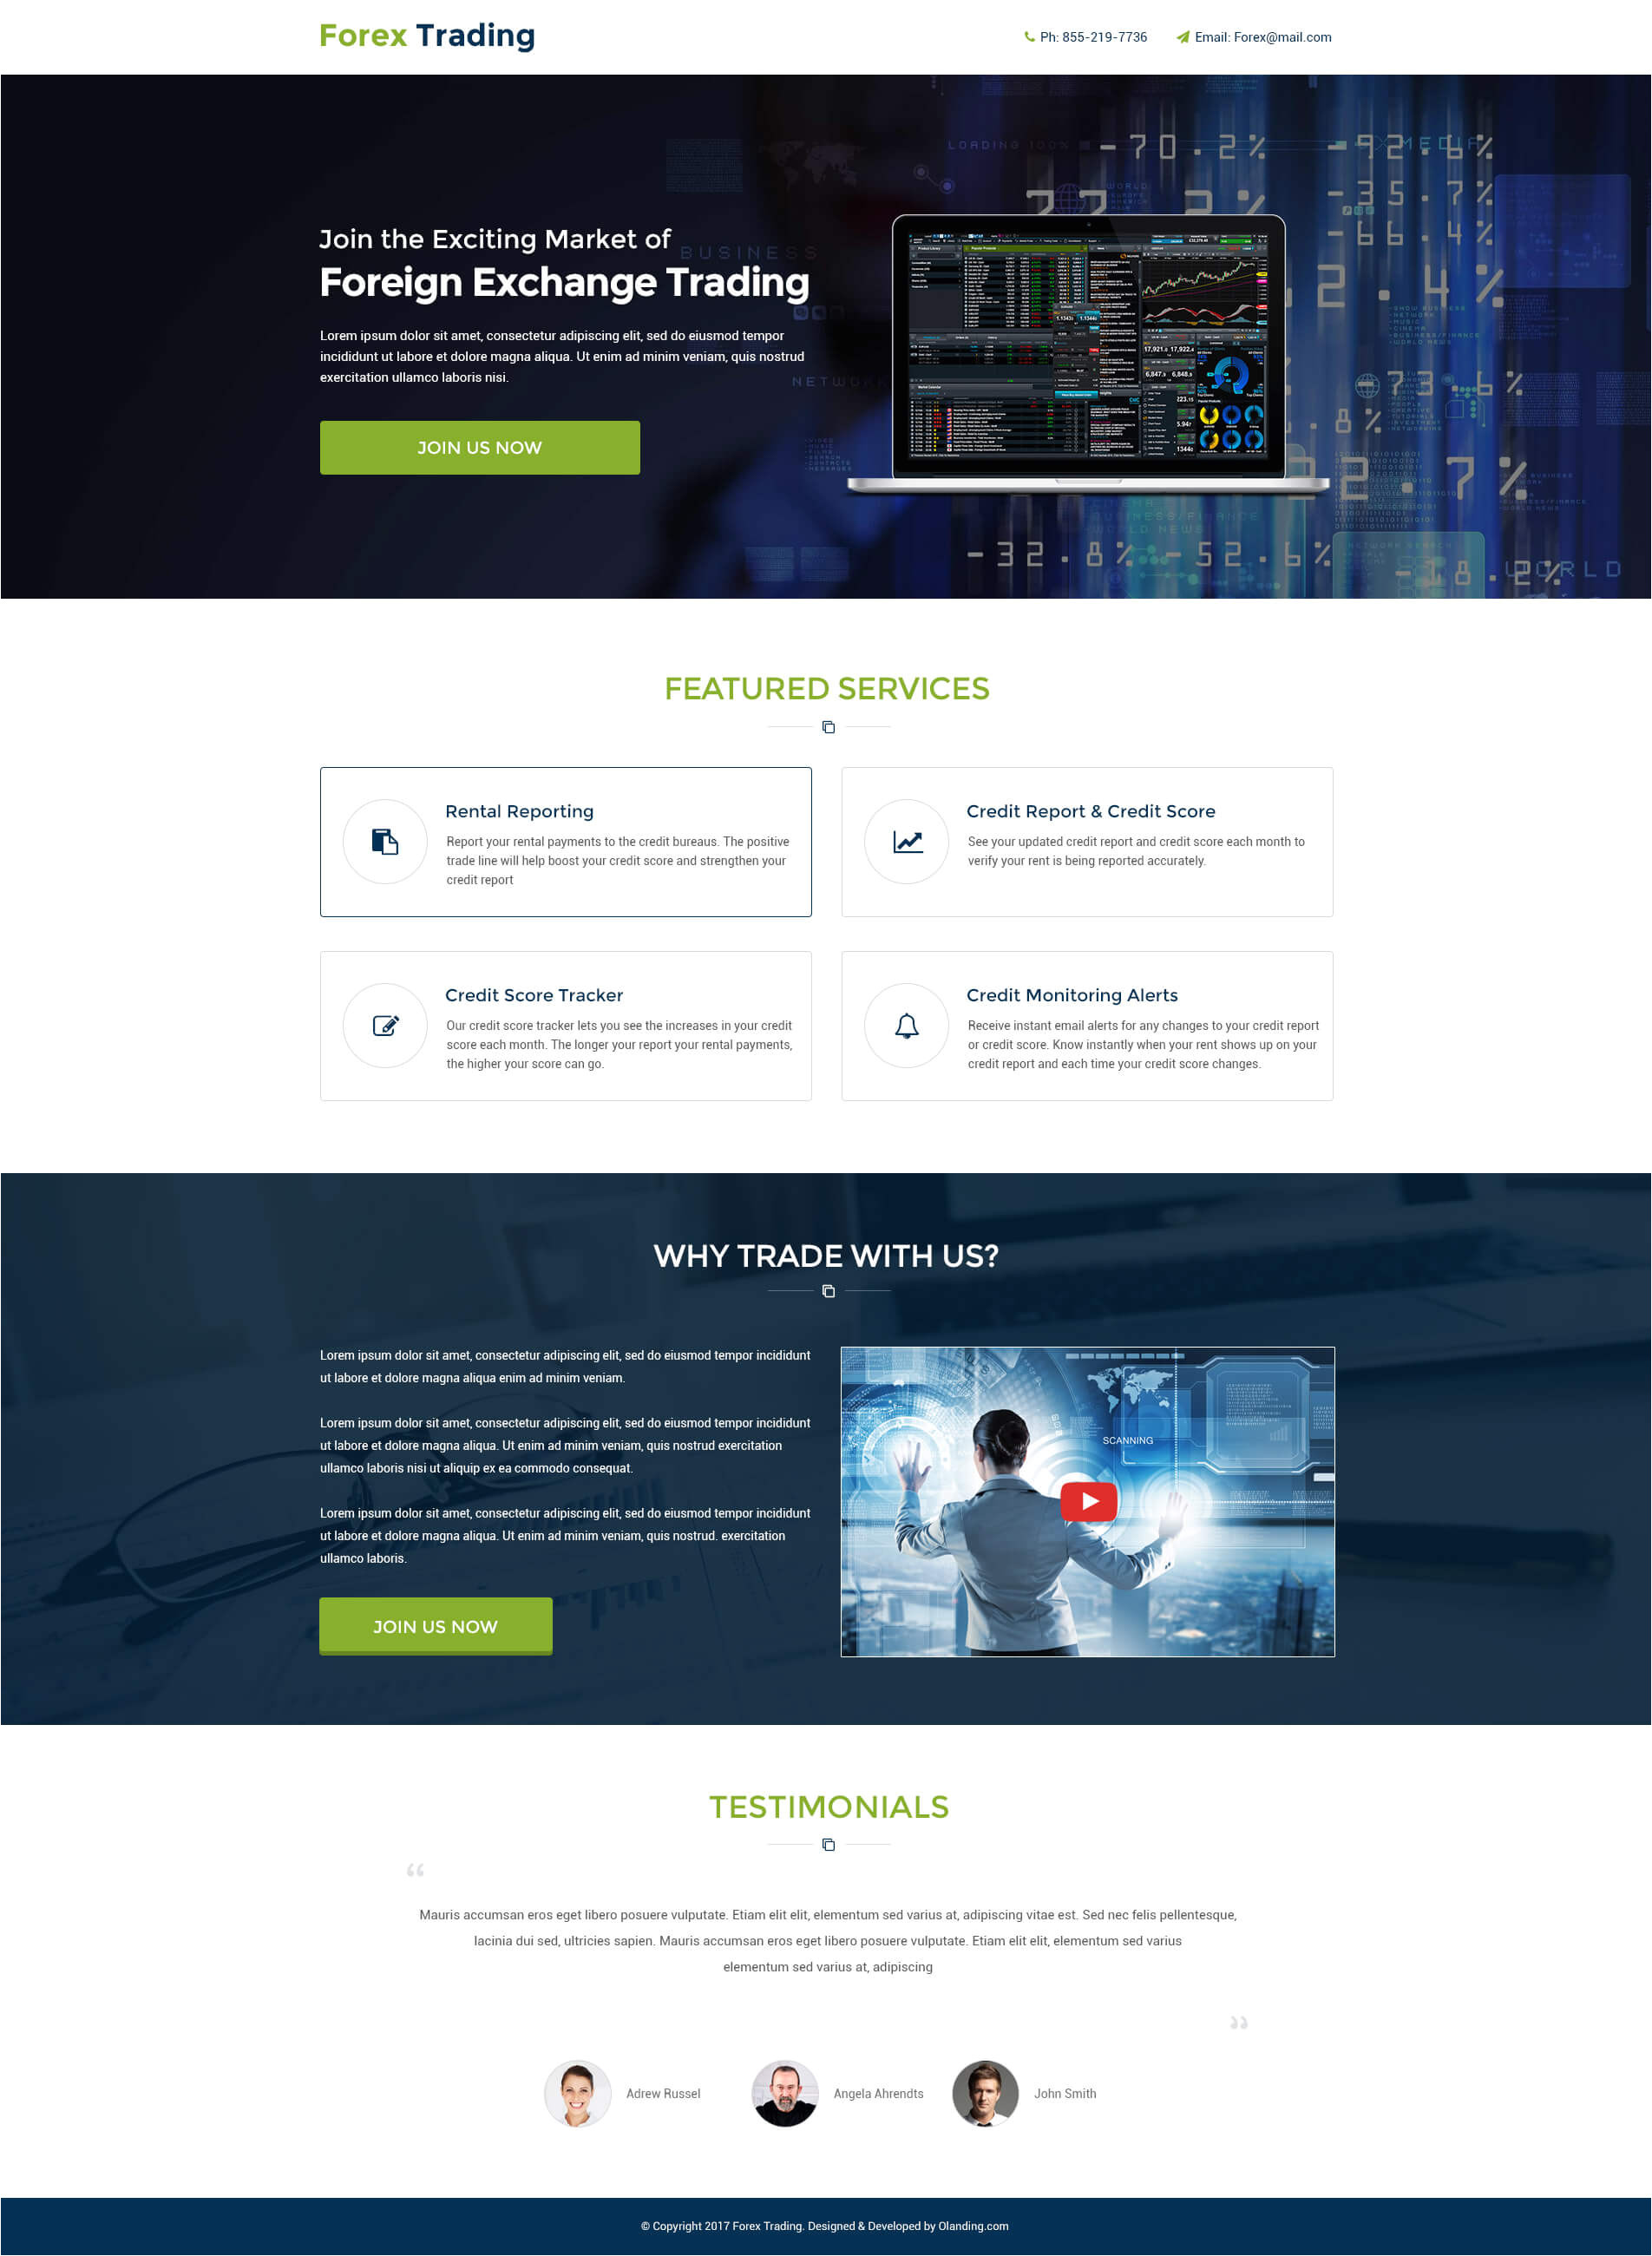 lead gen responsive forex trading landing page design templates to boost your trading business conversion